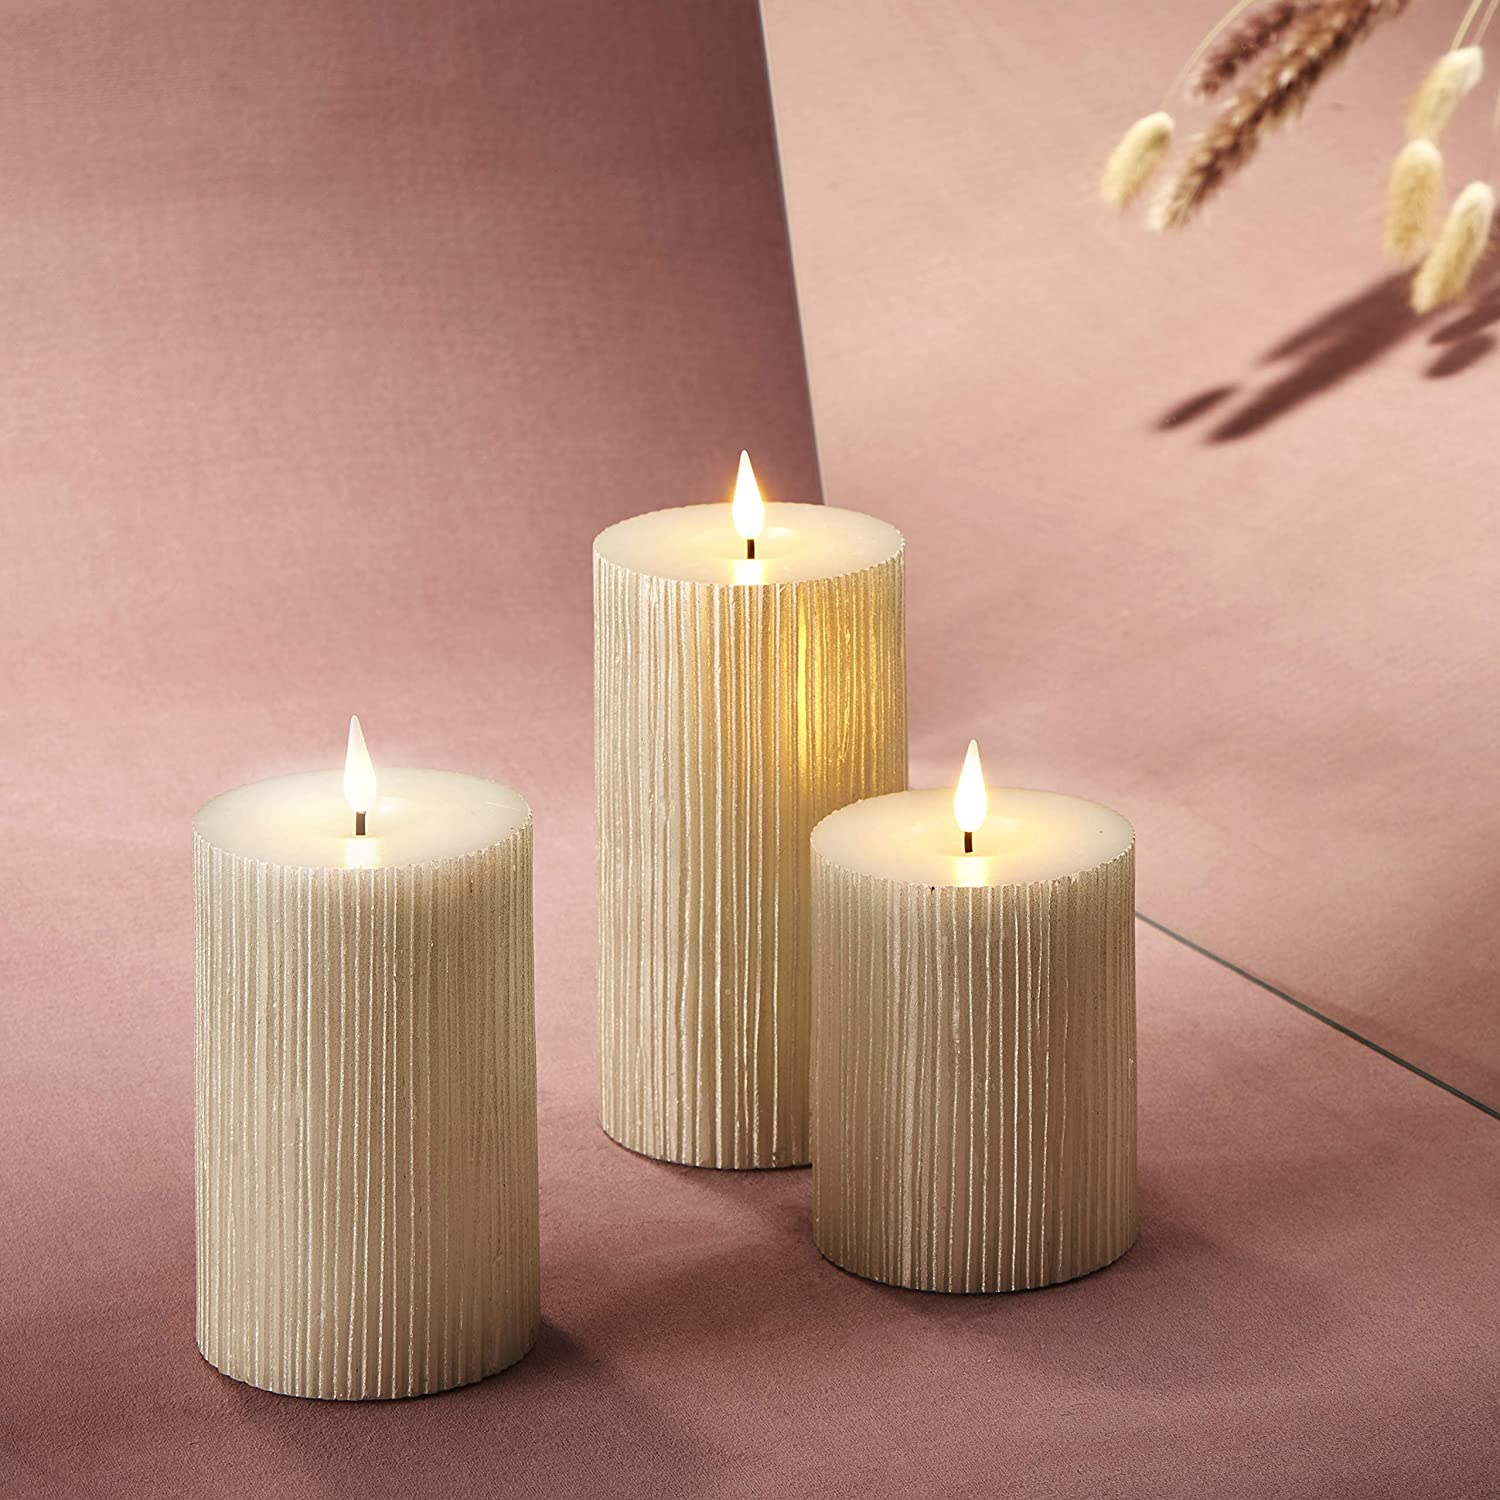 3d Flickering Flameless Candle Set 3 Diameter Pillar Candles Battery Operated Shimmering Gold Pearl Wax Realistic Wick And Flame Easter Mother S Day Remote Control Timer Included Set Of 3